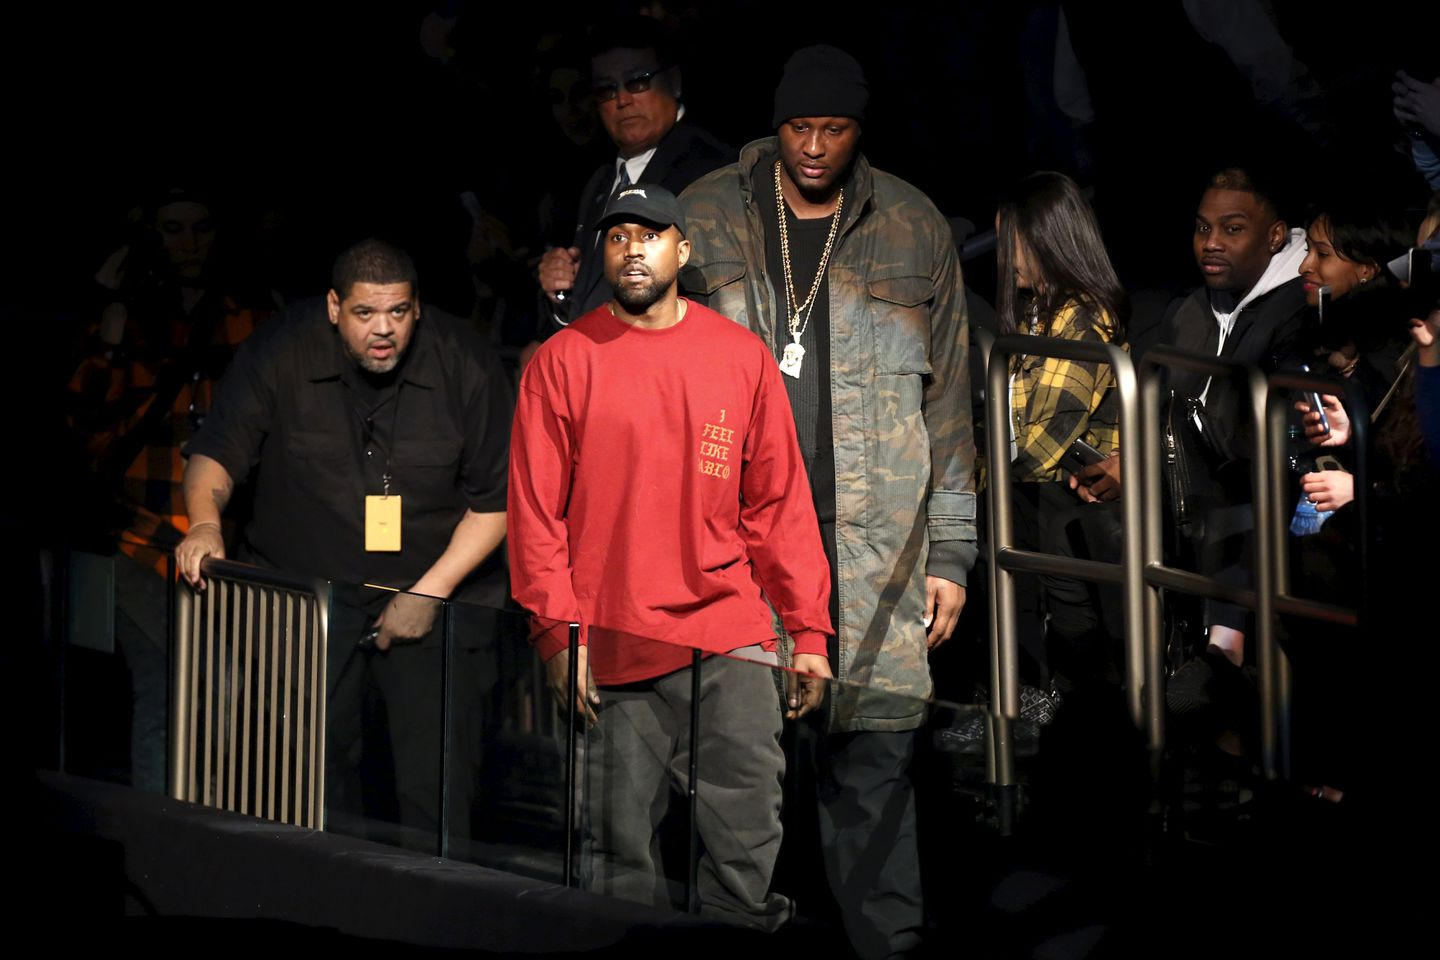 7be8bab24c0cc Kanye West (center) and Lamar Odom arrived at West s Yeezy Season 3  presentation and